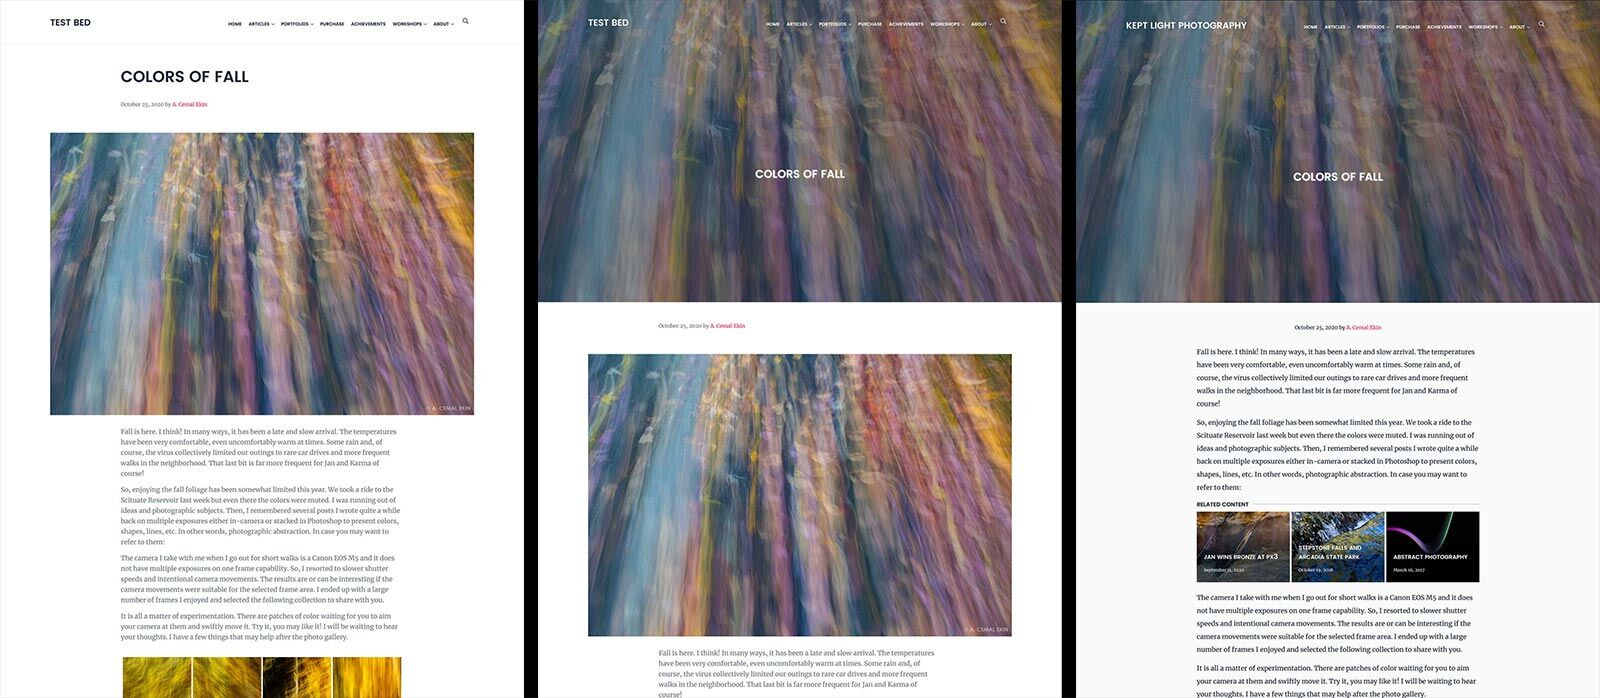 Use Css To Hide The First Image In A Post Kept Light Photography